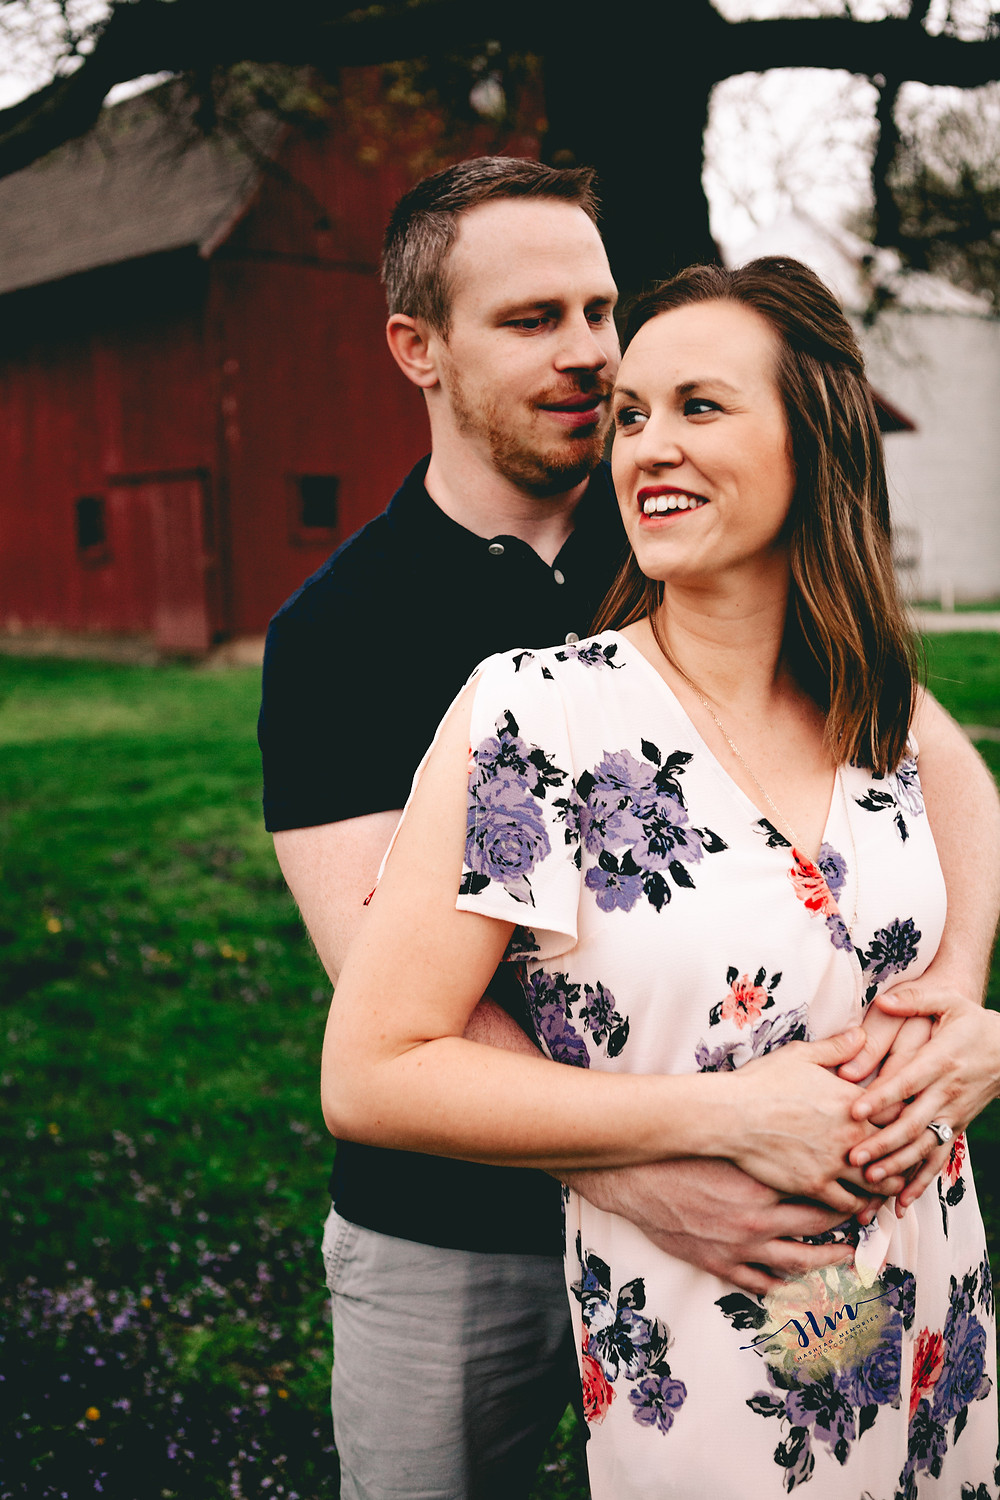 couples photographer in carmel indiana with red barn